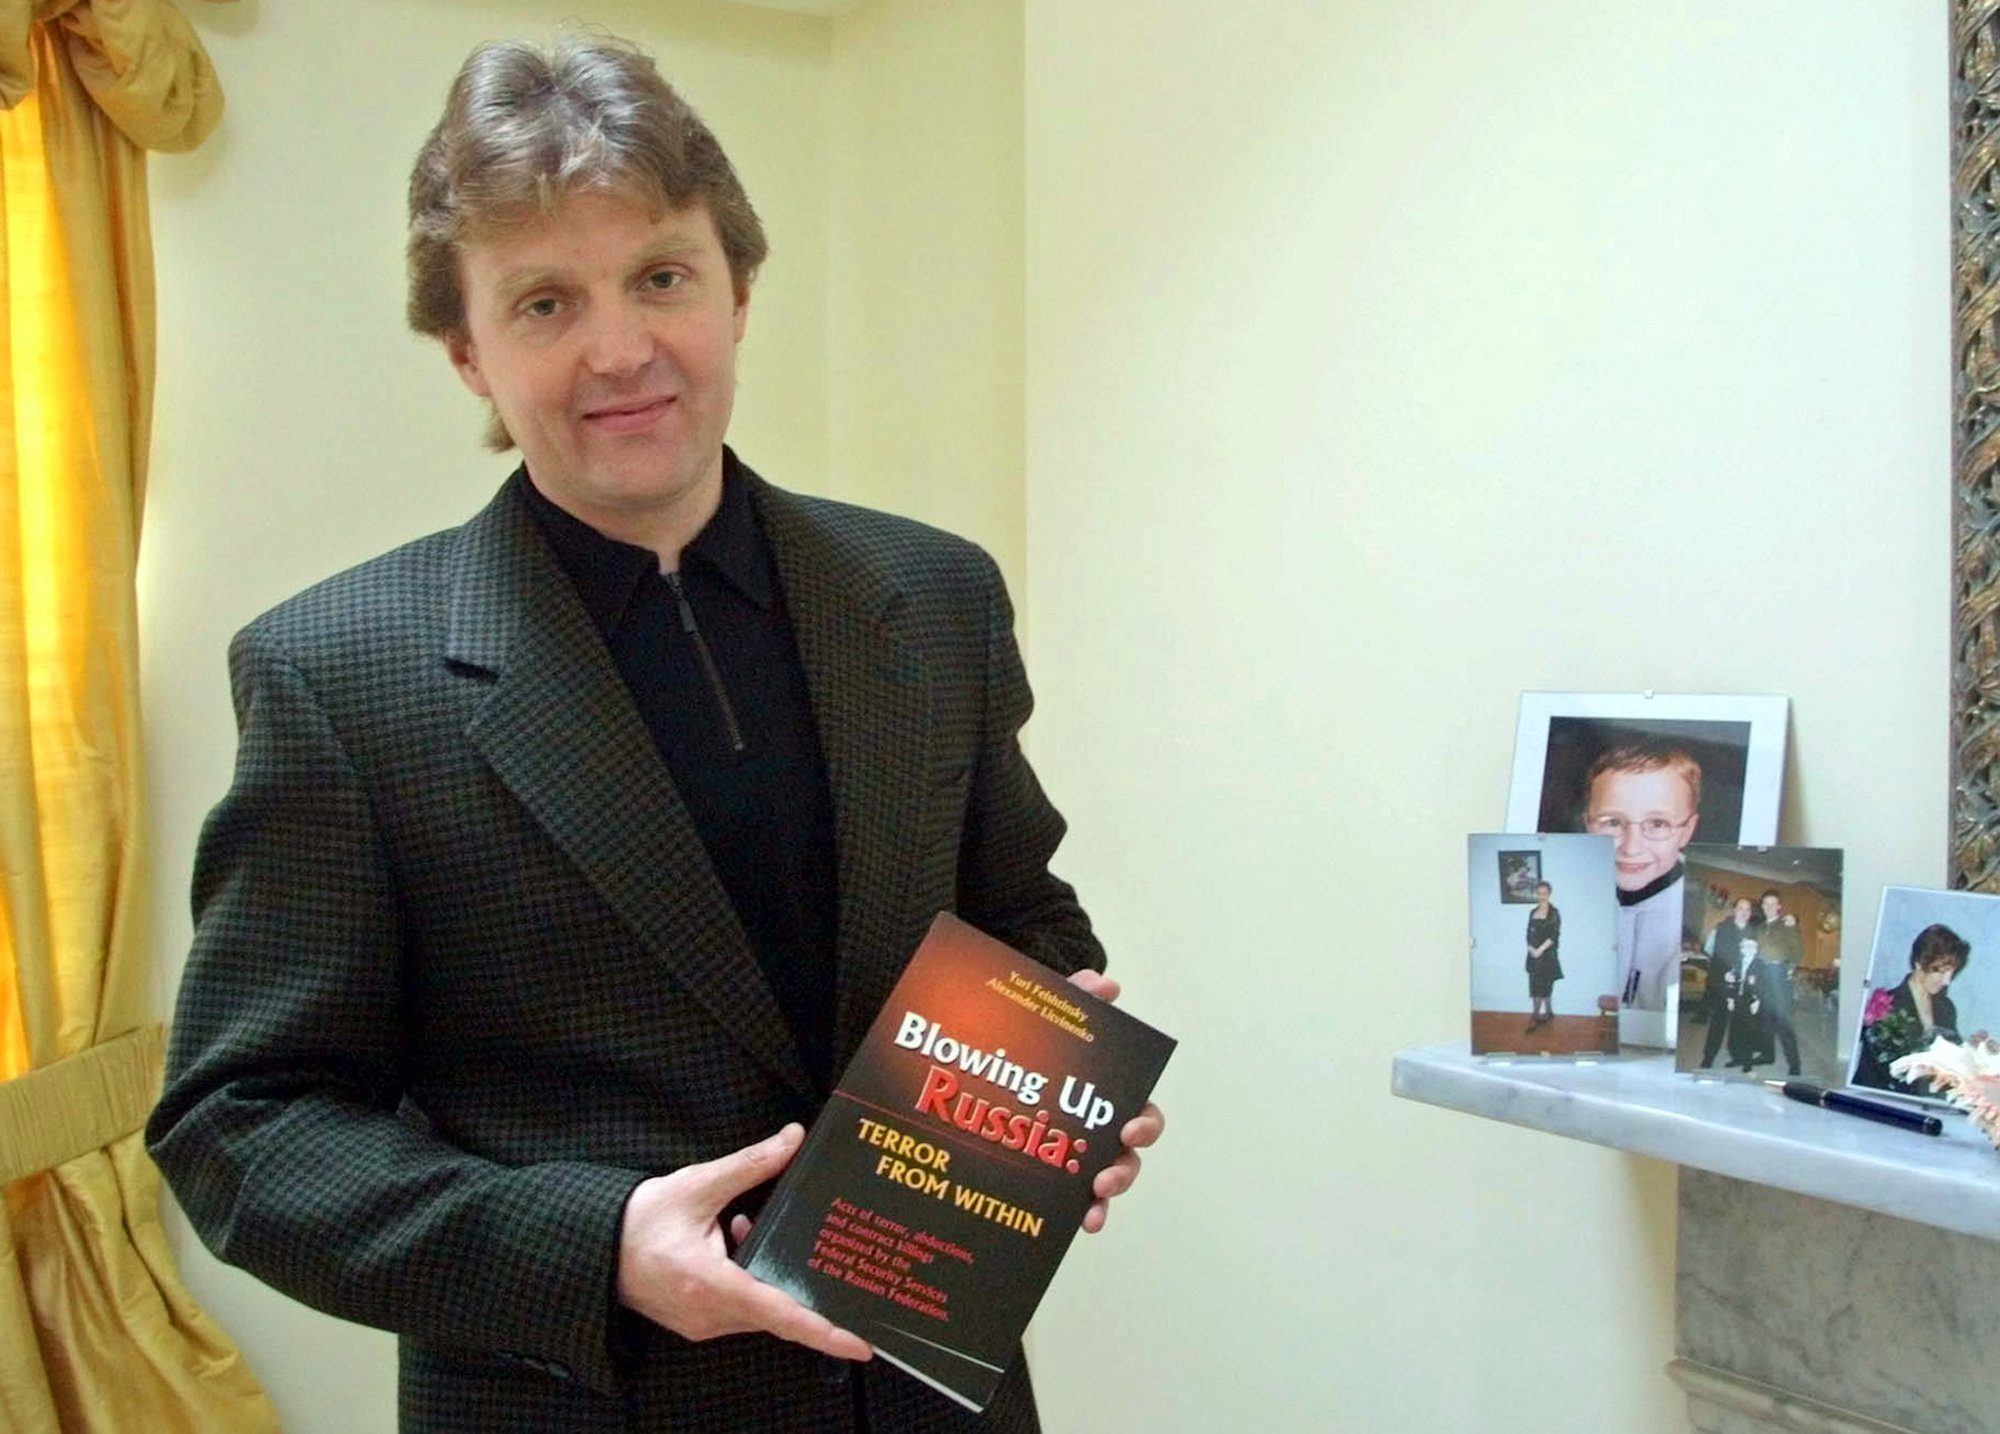 """Alexander Litvinenko A photo from files showing Alexander Litvinenko, former KGB spy and author of the book """"Blowing Up Russia: Terror From Within"""" photographed at his home in London. Polonium first hit the headlines when it was used to kill KGB agent-turned-Kremlin critic Alexander Litvinenko in London in 2006. This week, Yasser Arafat's widow has called for the late Palestinian leader's body to be exhumed after scientists in Switzerland found elevated traces of radioactive polonium-210 on clothing he allegedly wore before his death in 2004 BC-EU--Polonium"""